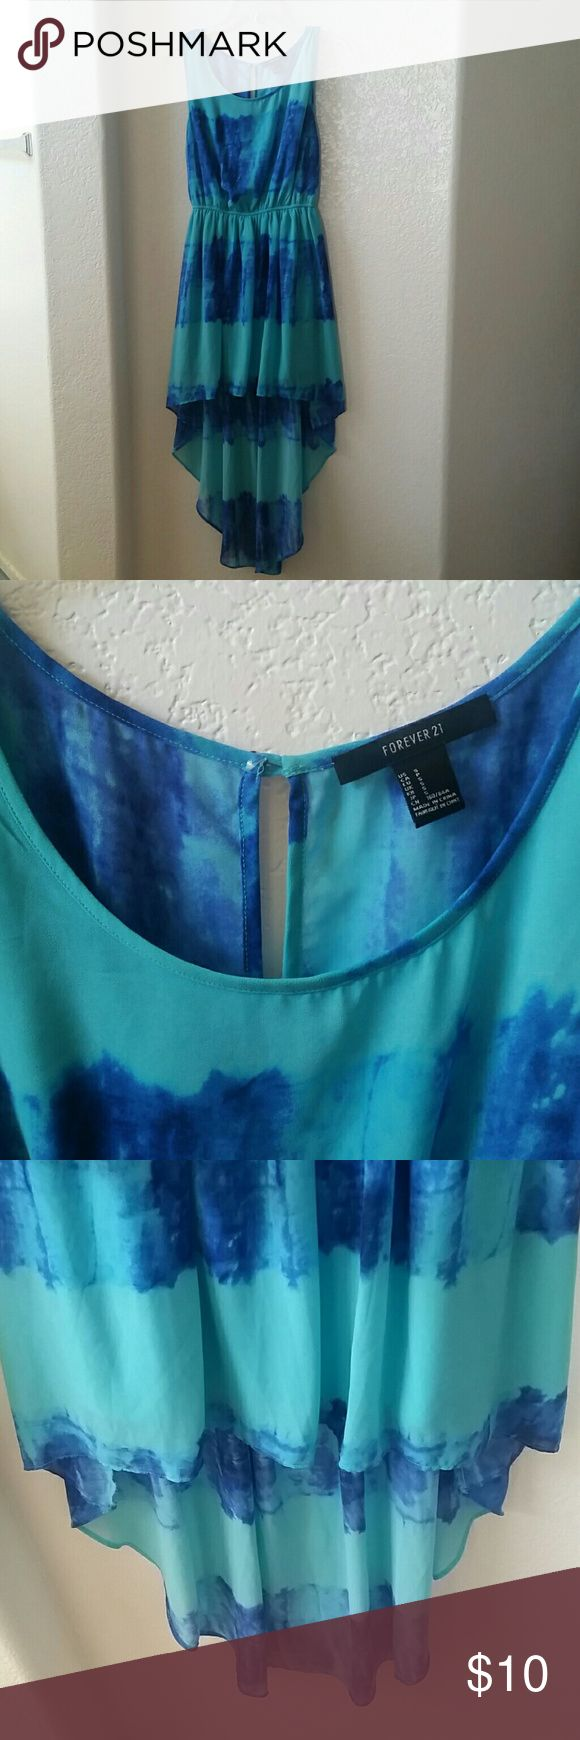 Forever 21 tie-dye stripe high low dress Great summer dress! Blue tie-dye stripes on aqua background. High-low style. Cinched at waist. Mid-thigh length liner underneath. Forever 21 Dresses High Low